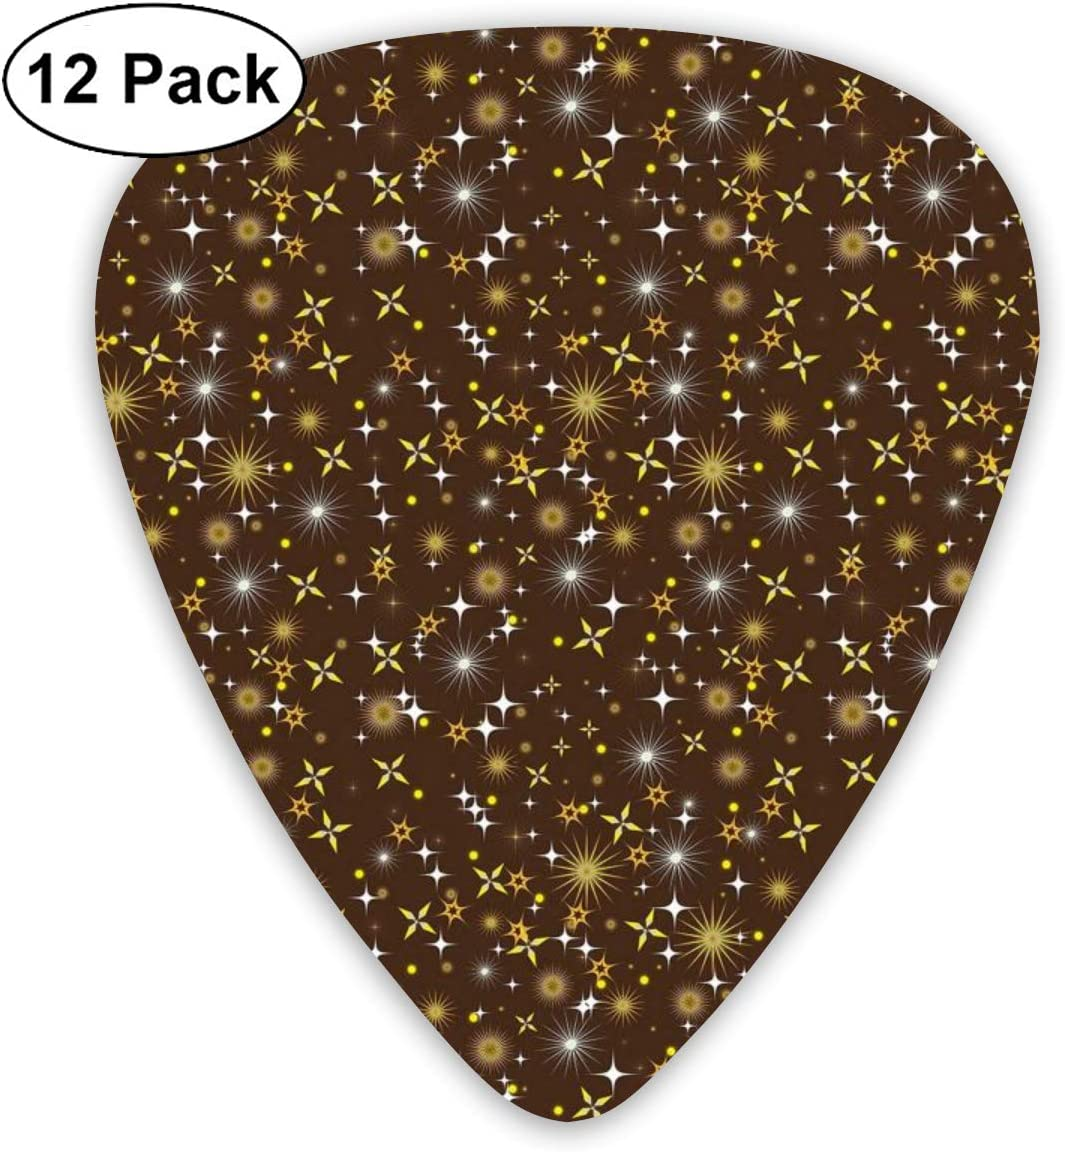 Guitar Picks12pcs Plectrum (0.46mm-0.96mm), Star With Different Shapes Celestial Elements Constellations Galaxy Universe,For Your Guitar or Ukulele